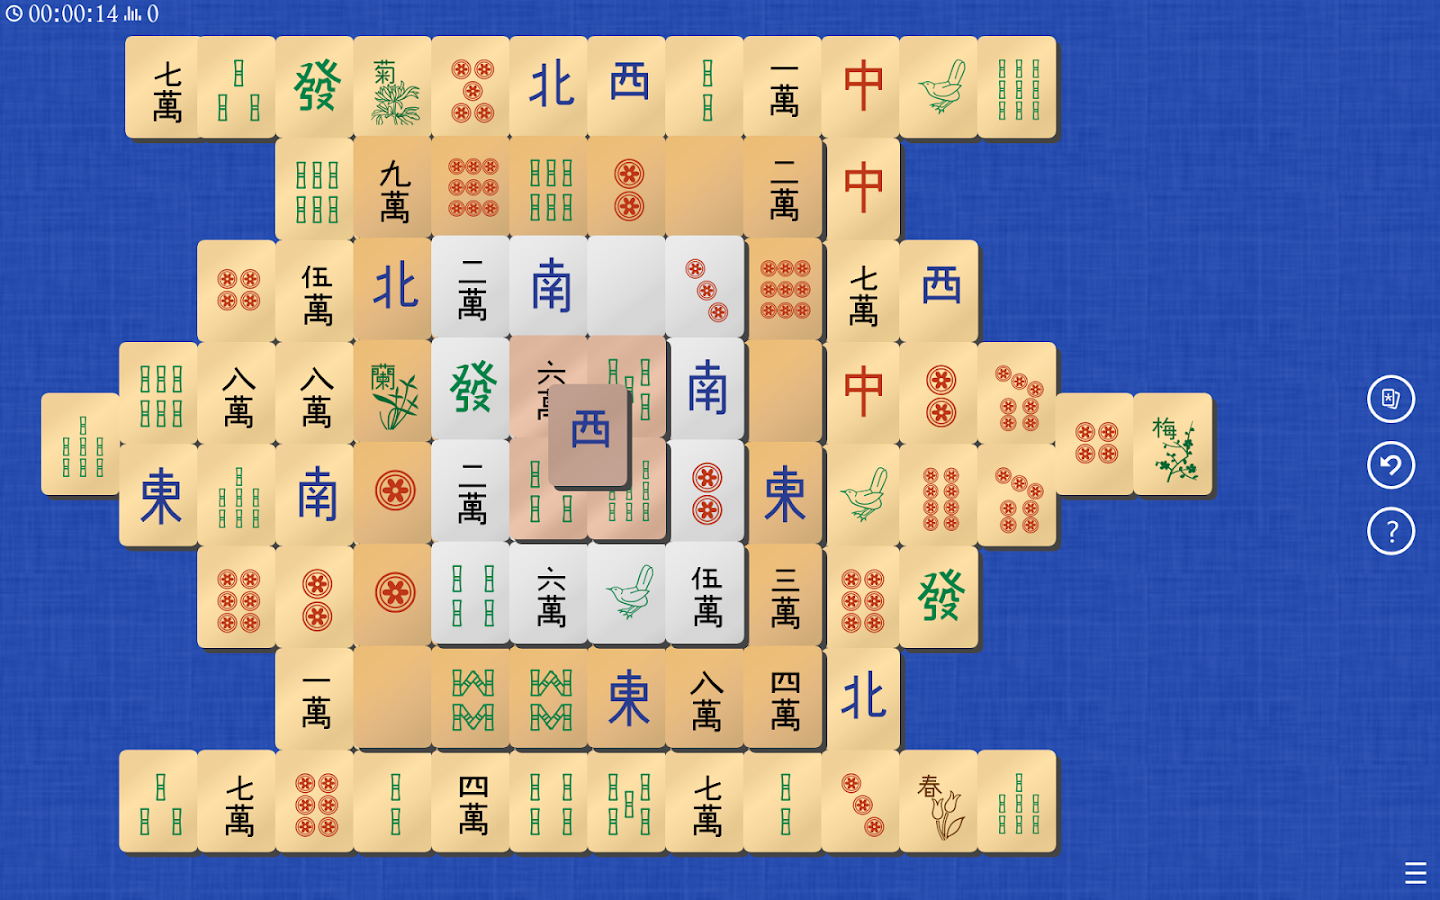 Solitaire Collection (1500+) Screenshot 11